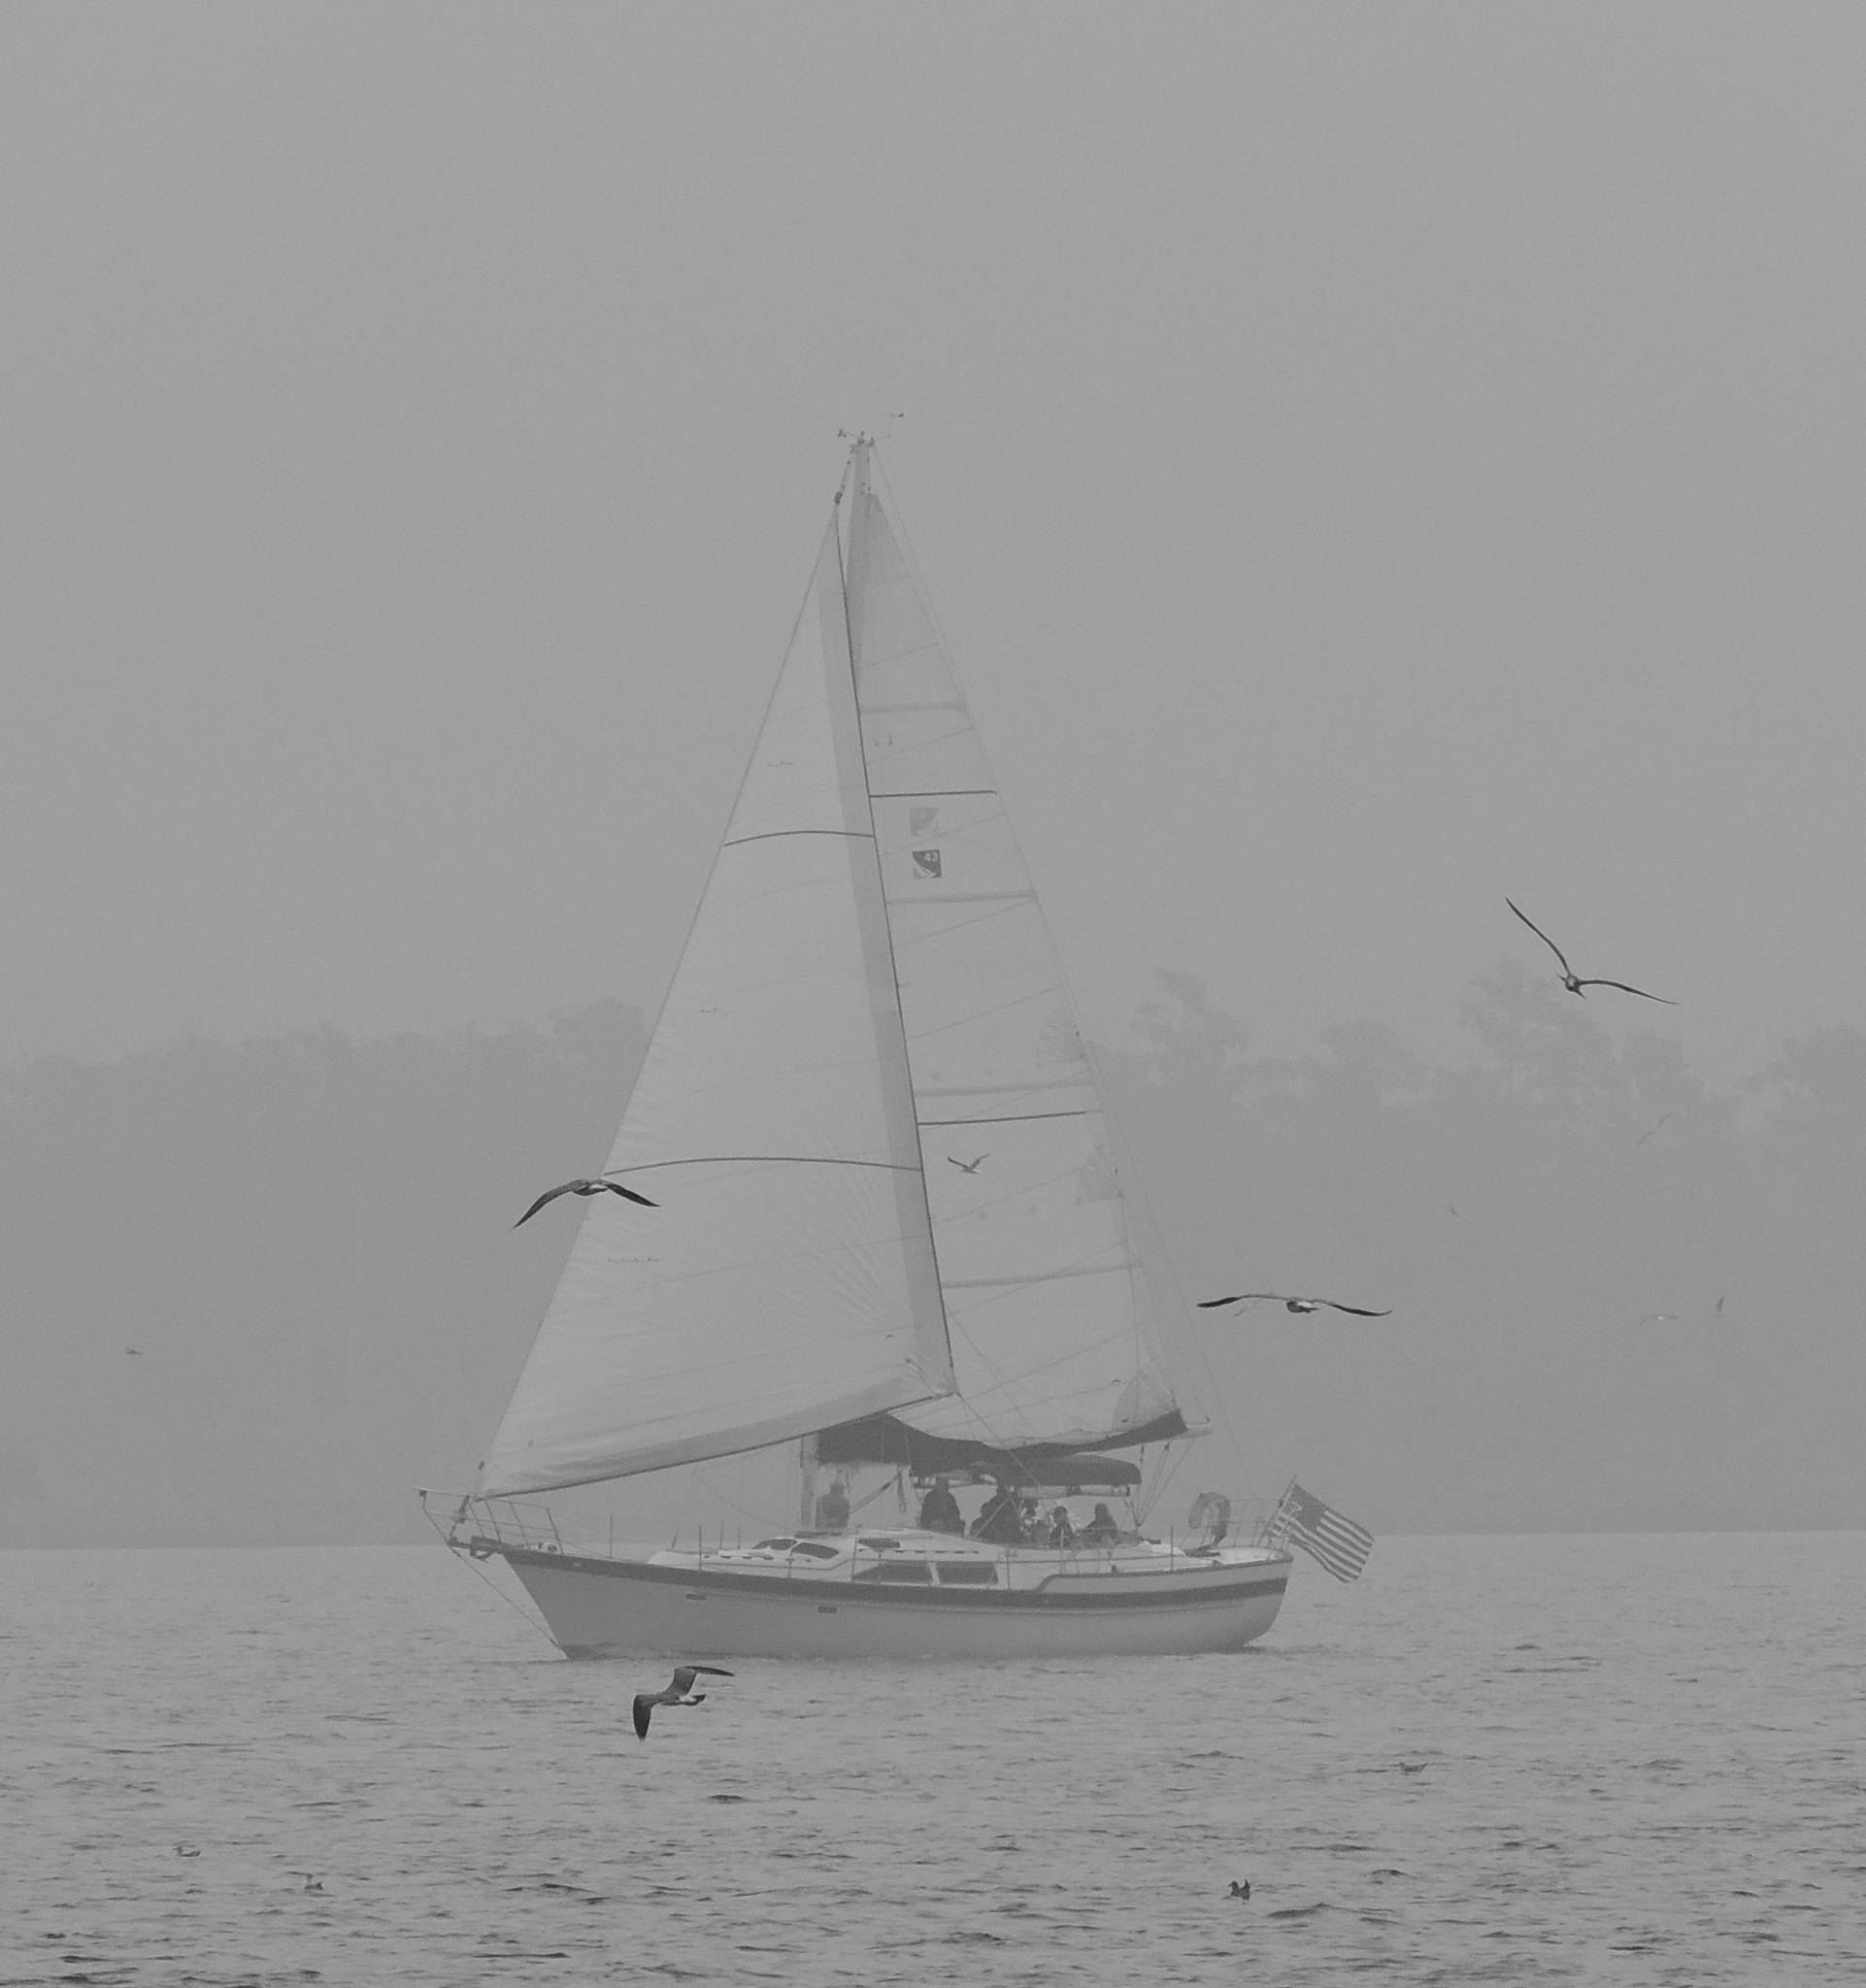 Sailboat in fog by sh2020